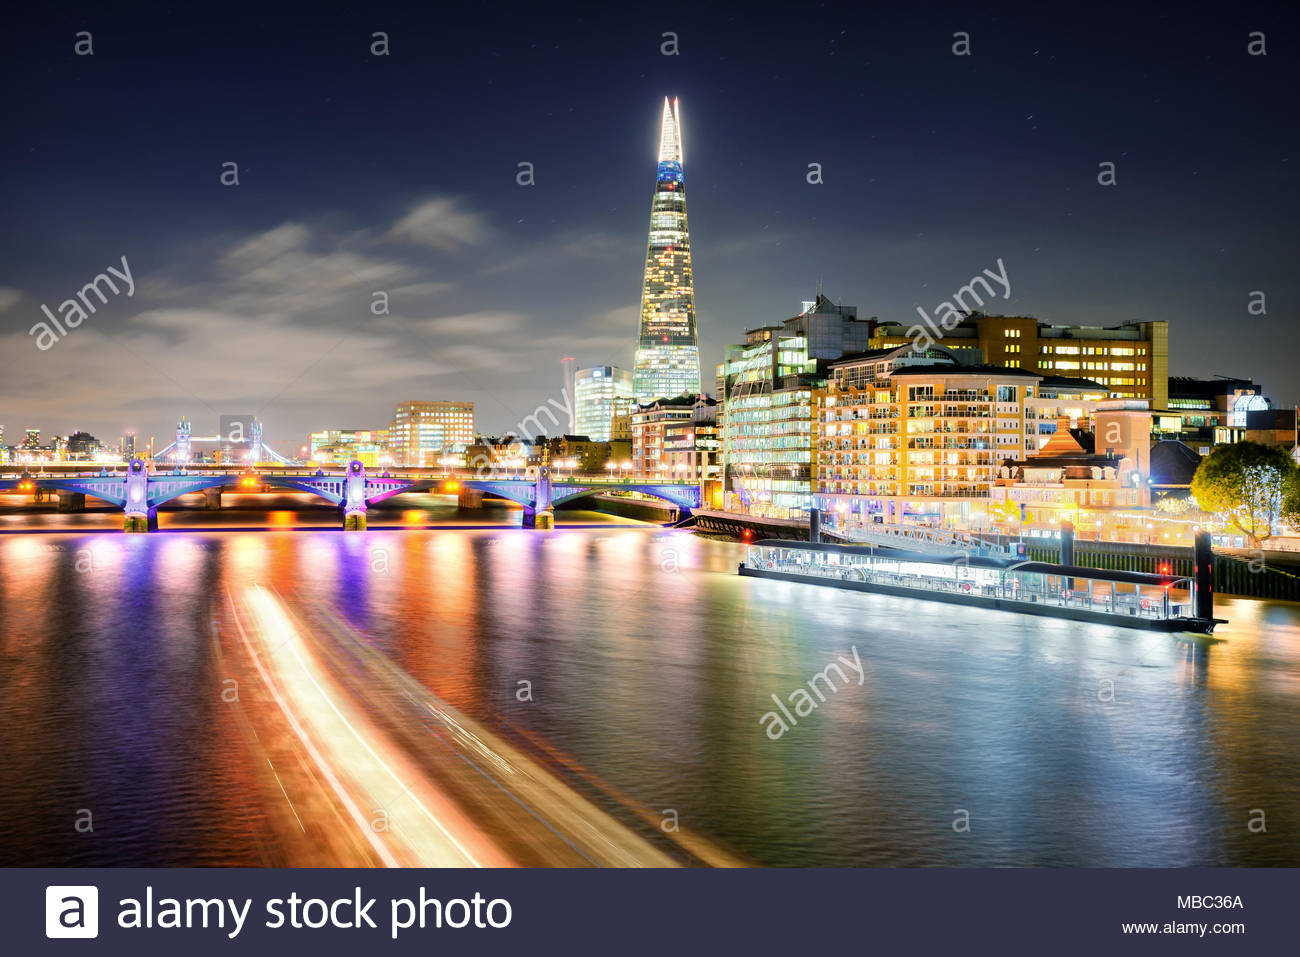 London at night with urban architecture, amazing skyscraper and boat at Thames river, United Kingdom - Stock Image